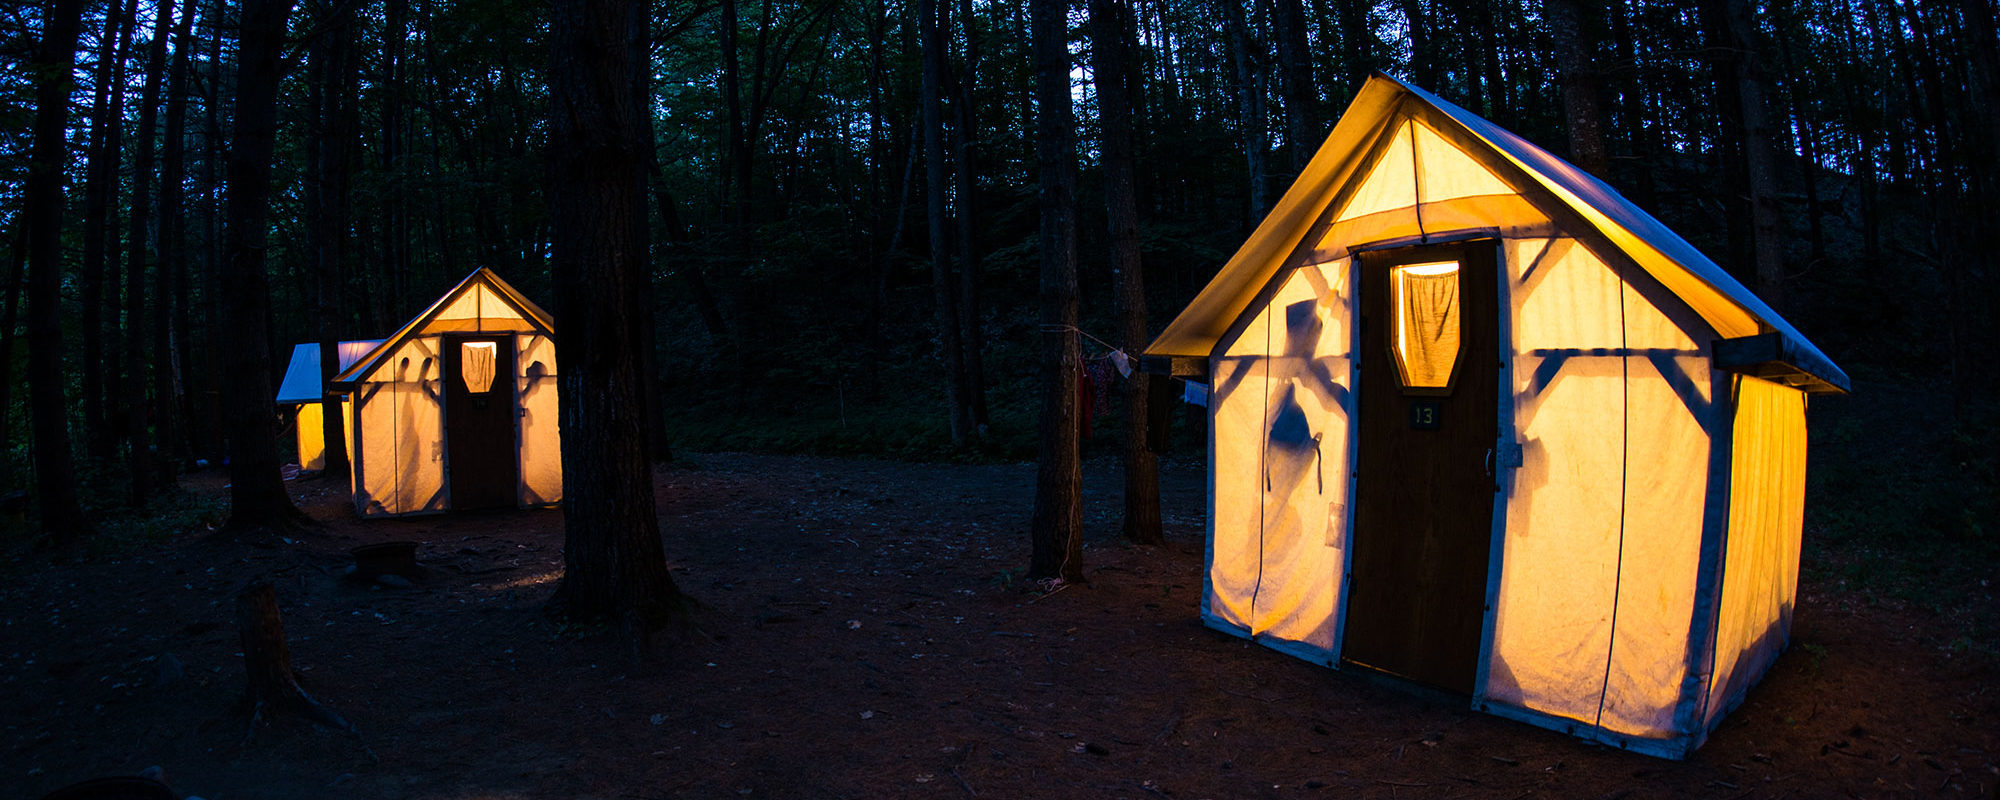 2-person Cabin tents at night